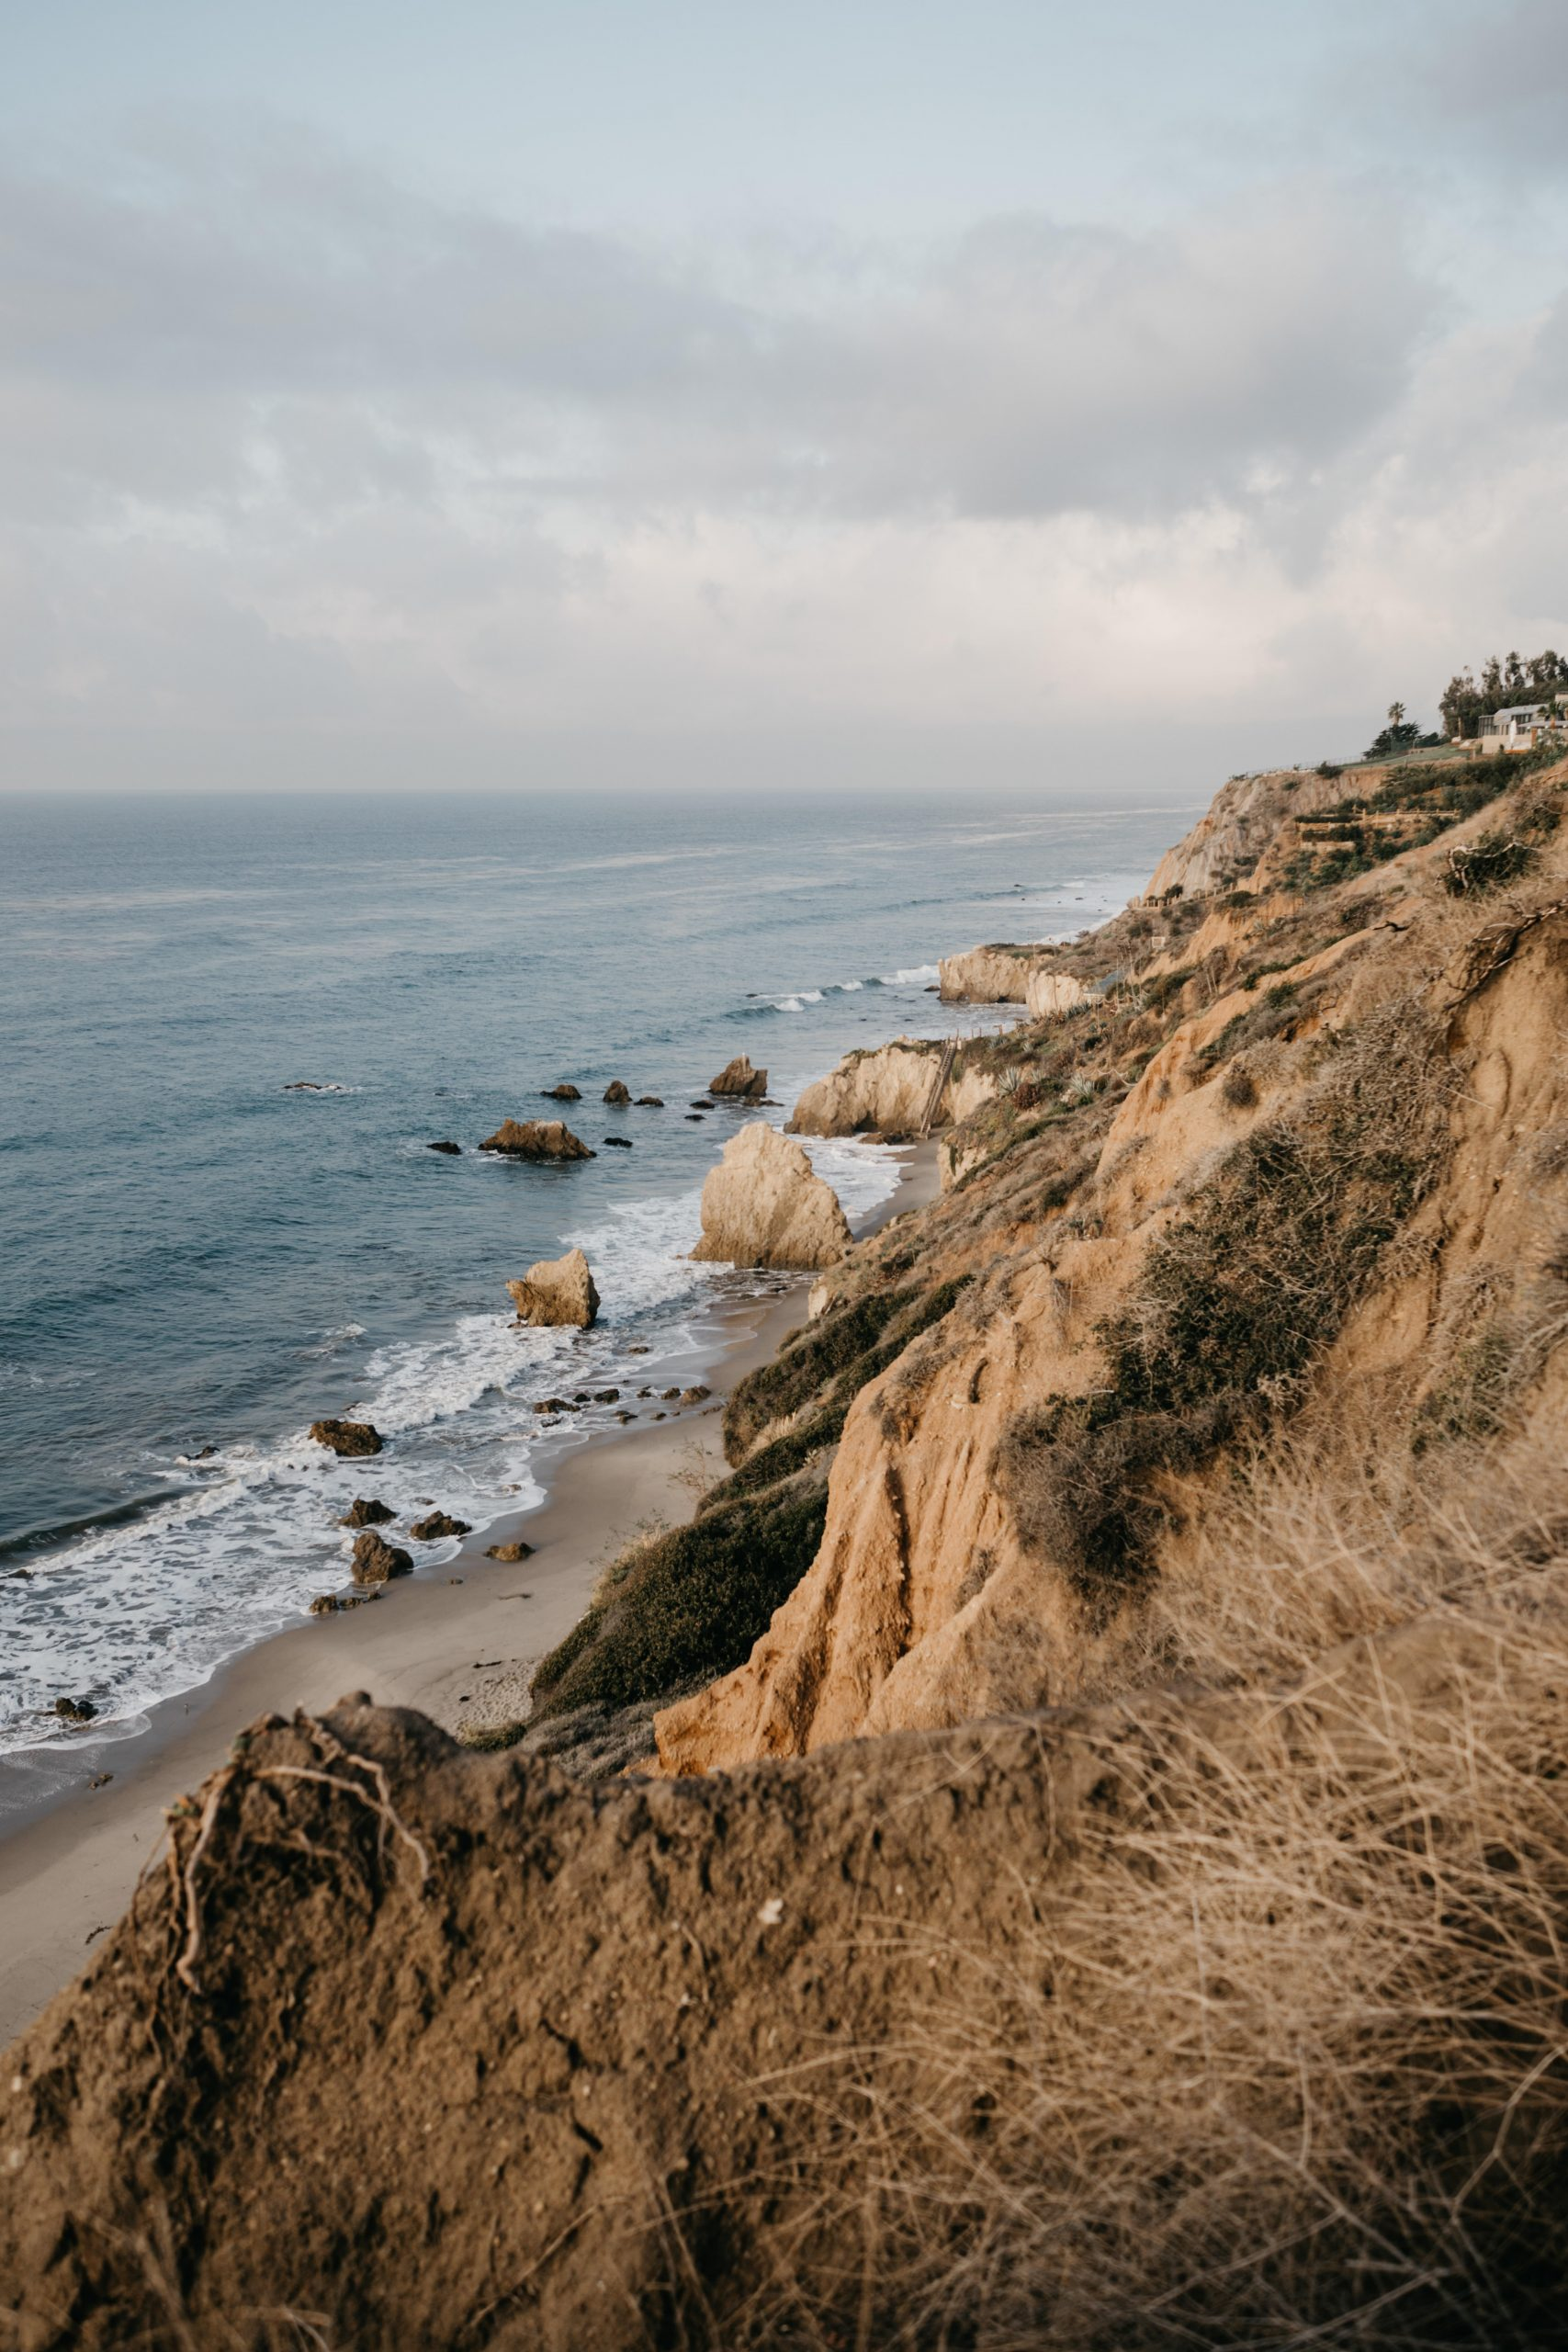 Malibu Coast Phone Wallpaper, image by Fatima Elreda Photo